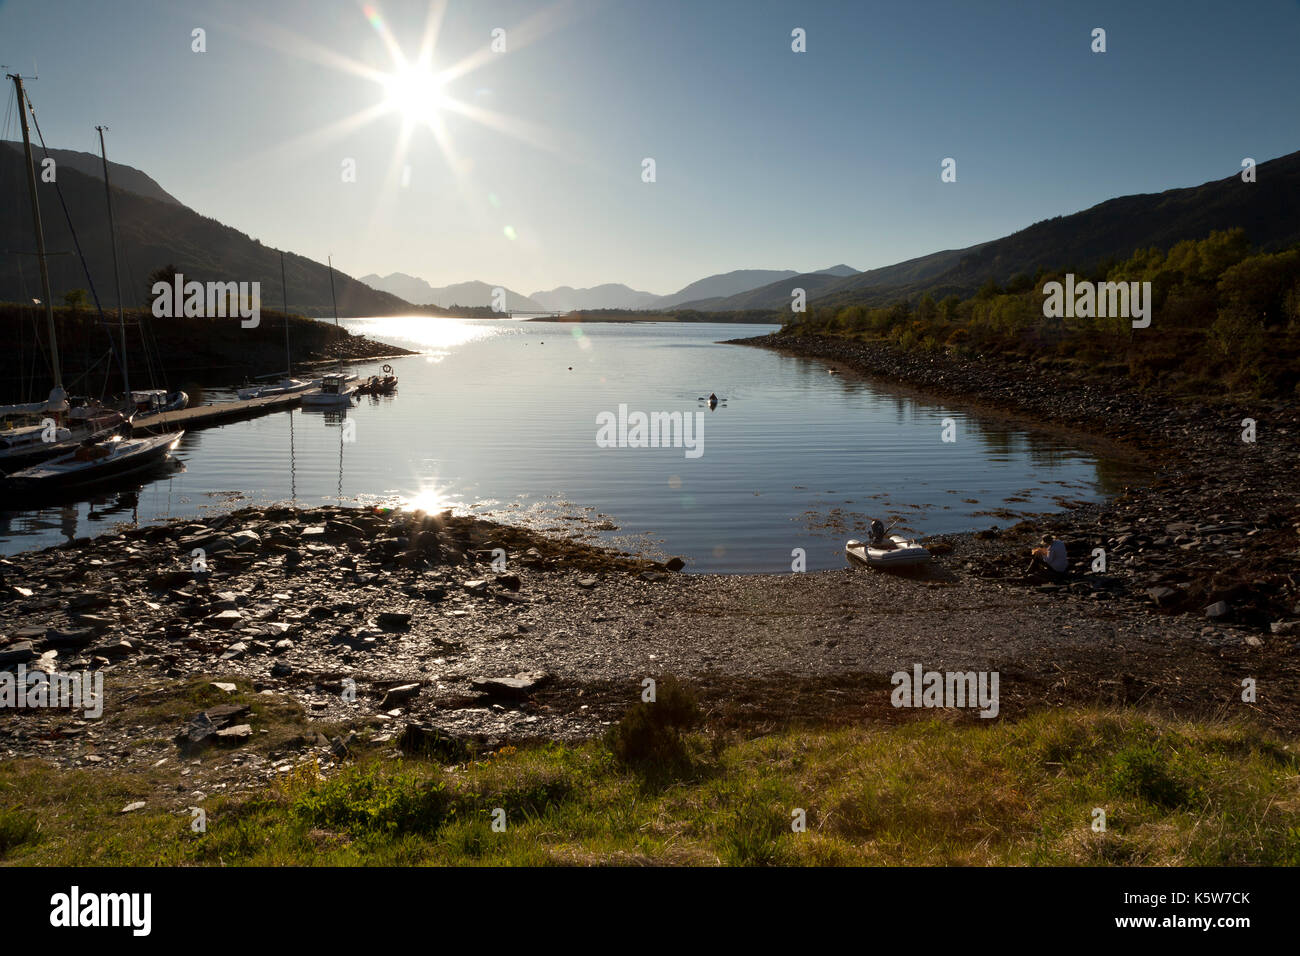 Loch Leven, Ballachulish, Glencoe, Scotland, UK - Stock Image